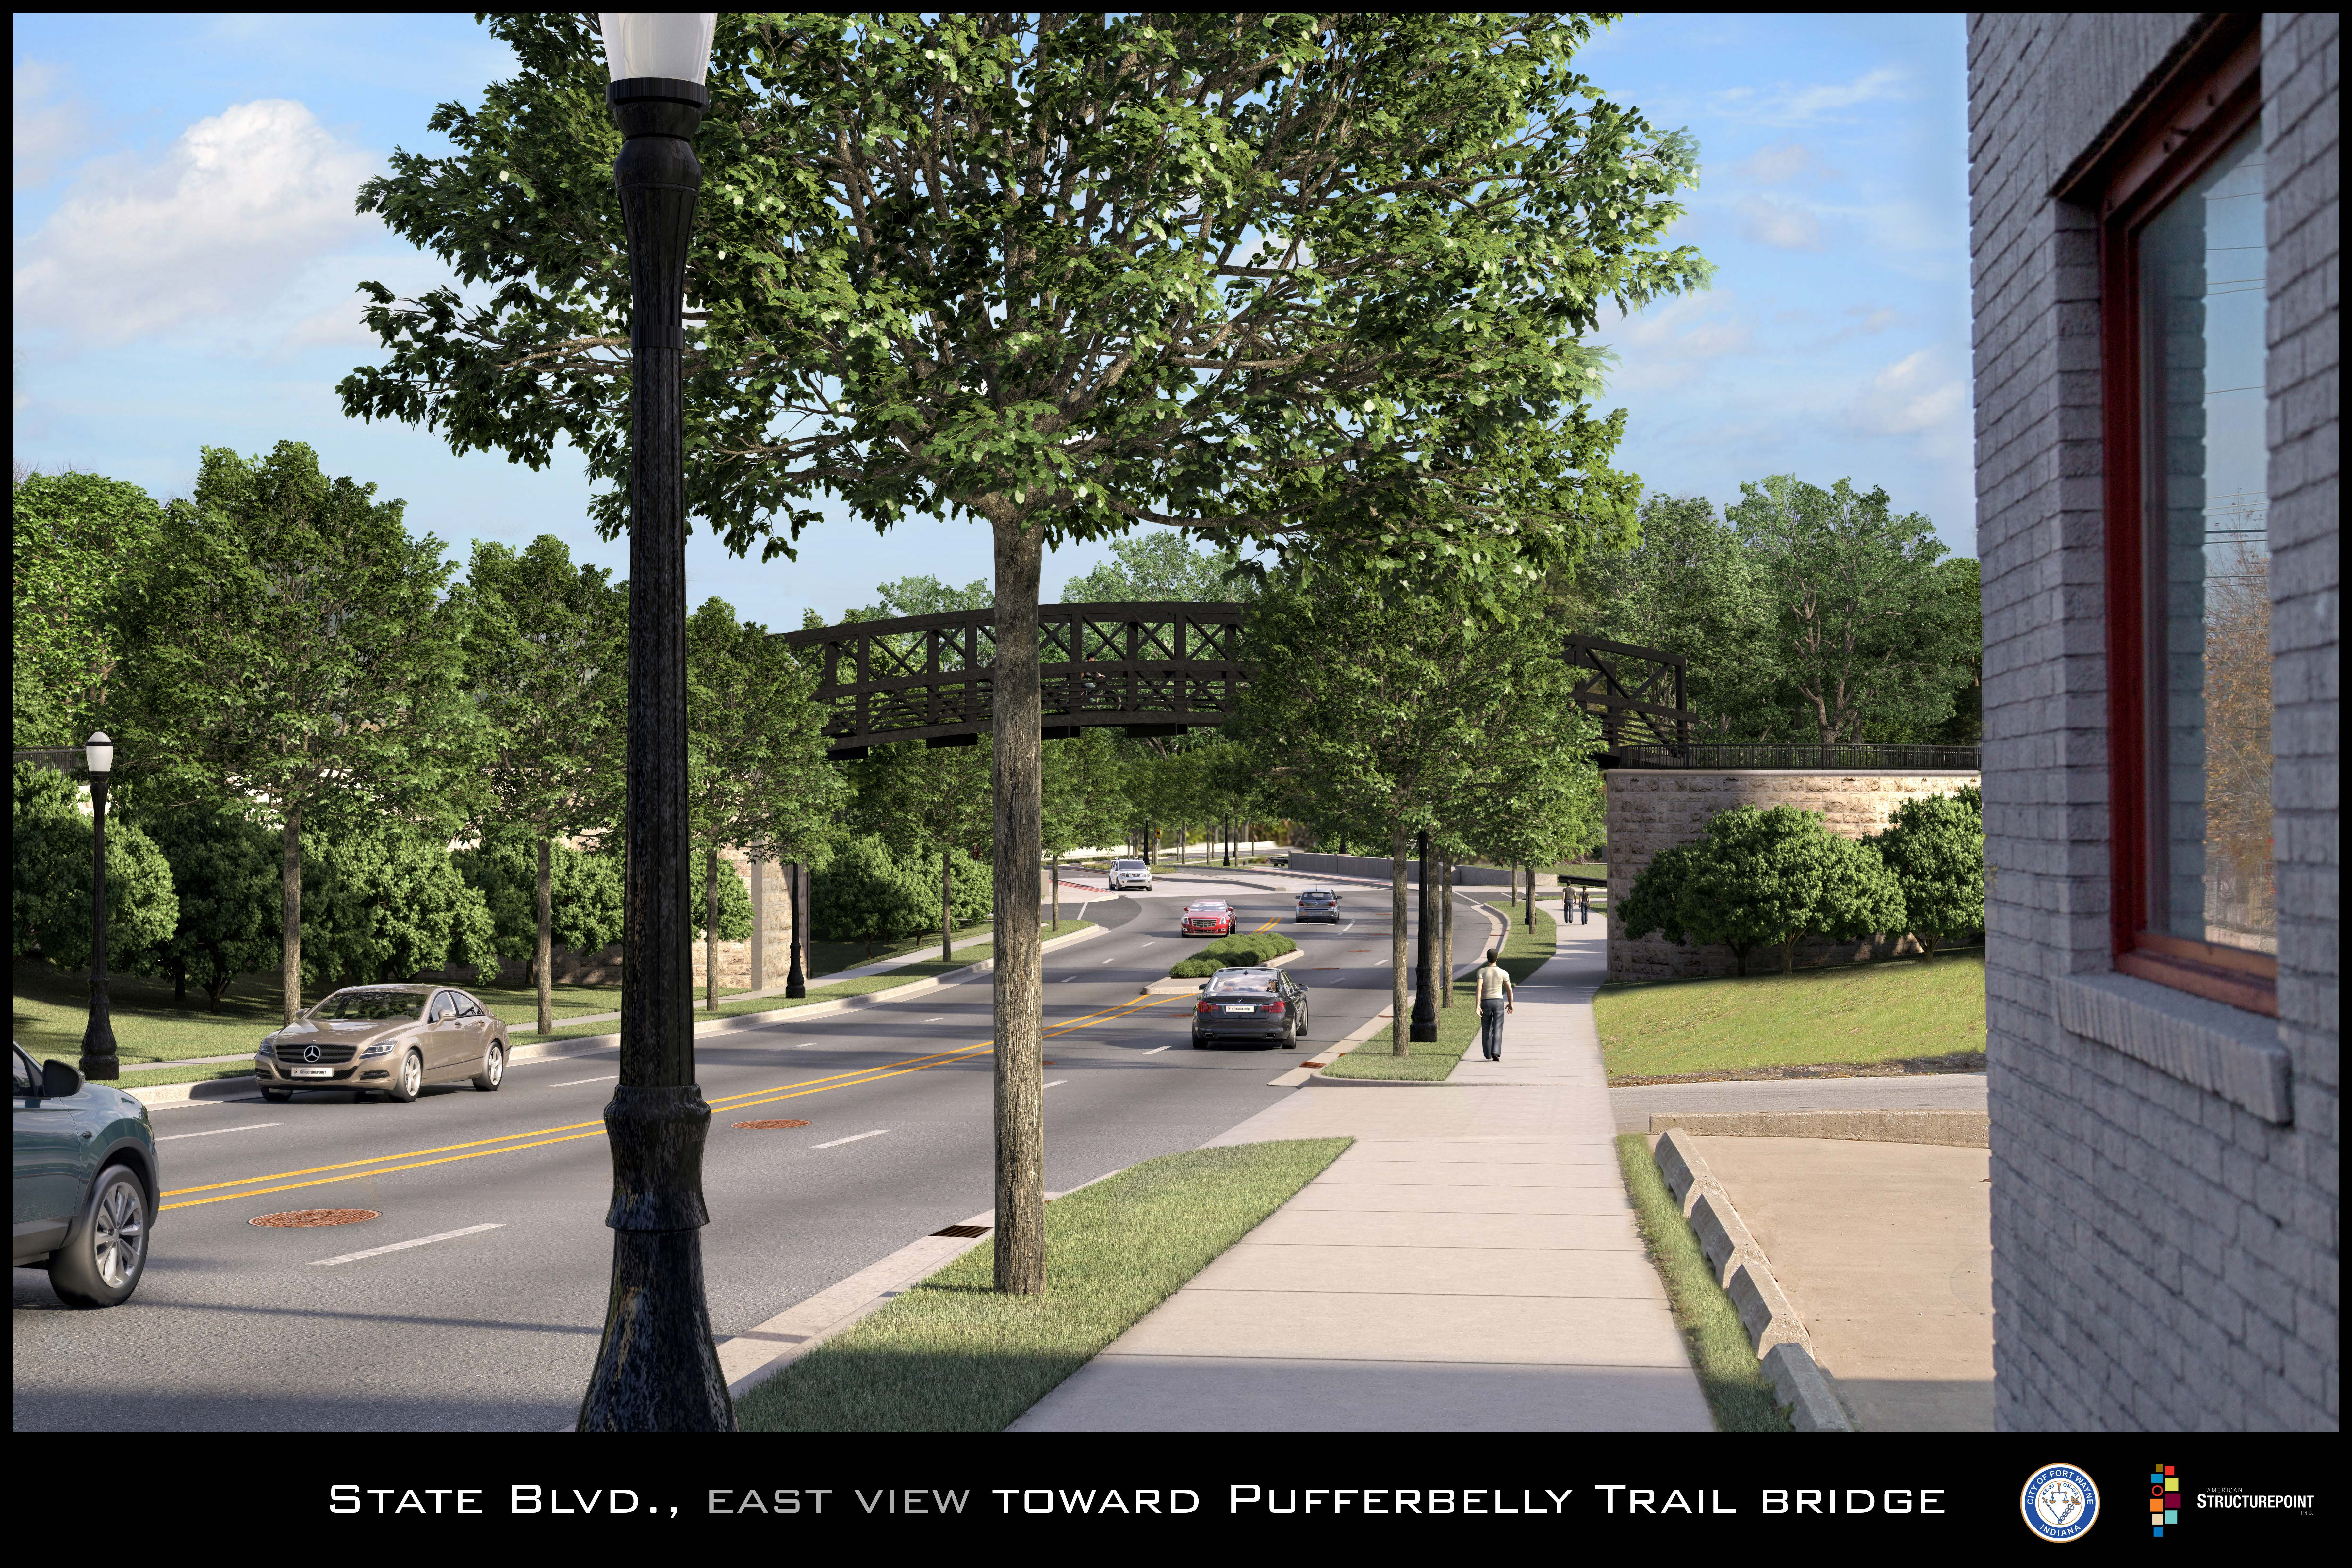 State East View Towards Ped Bridge Proposed